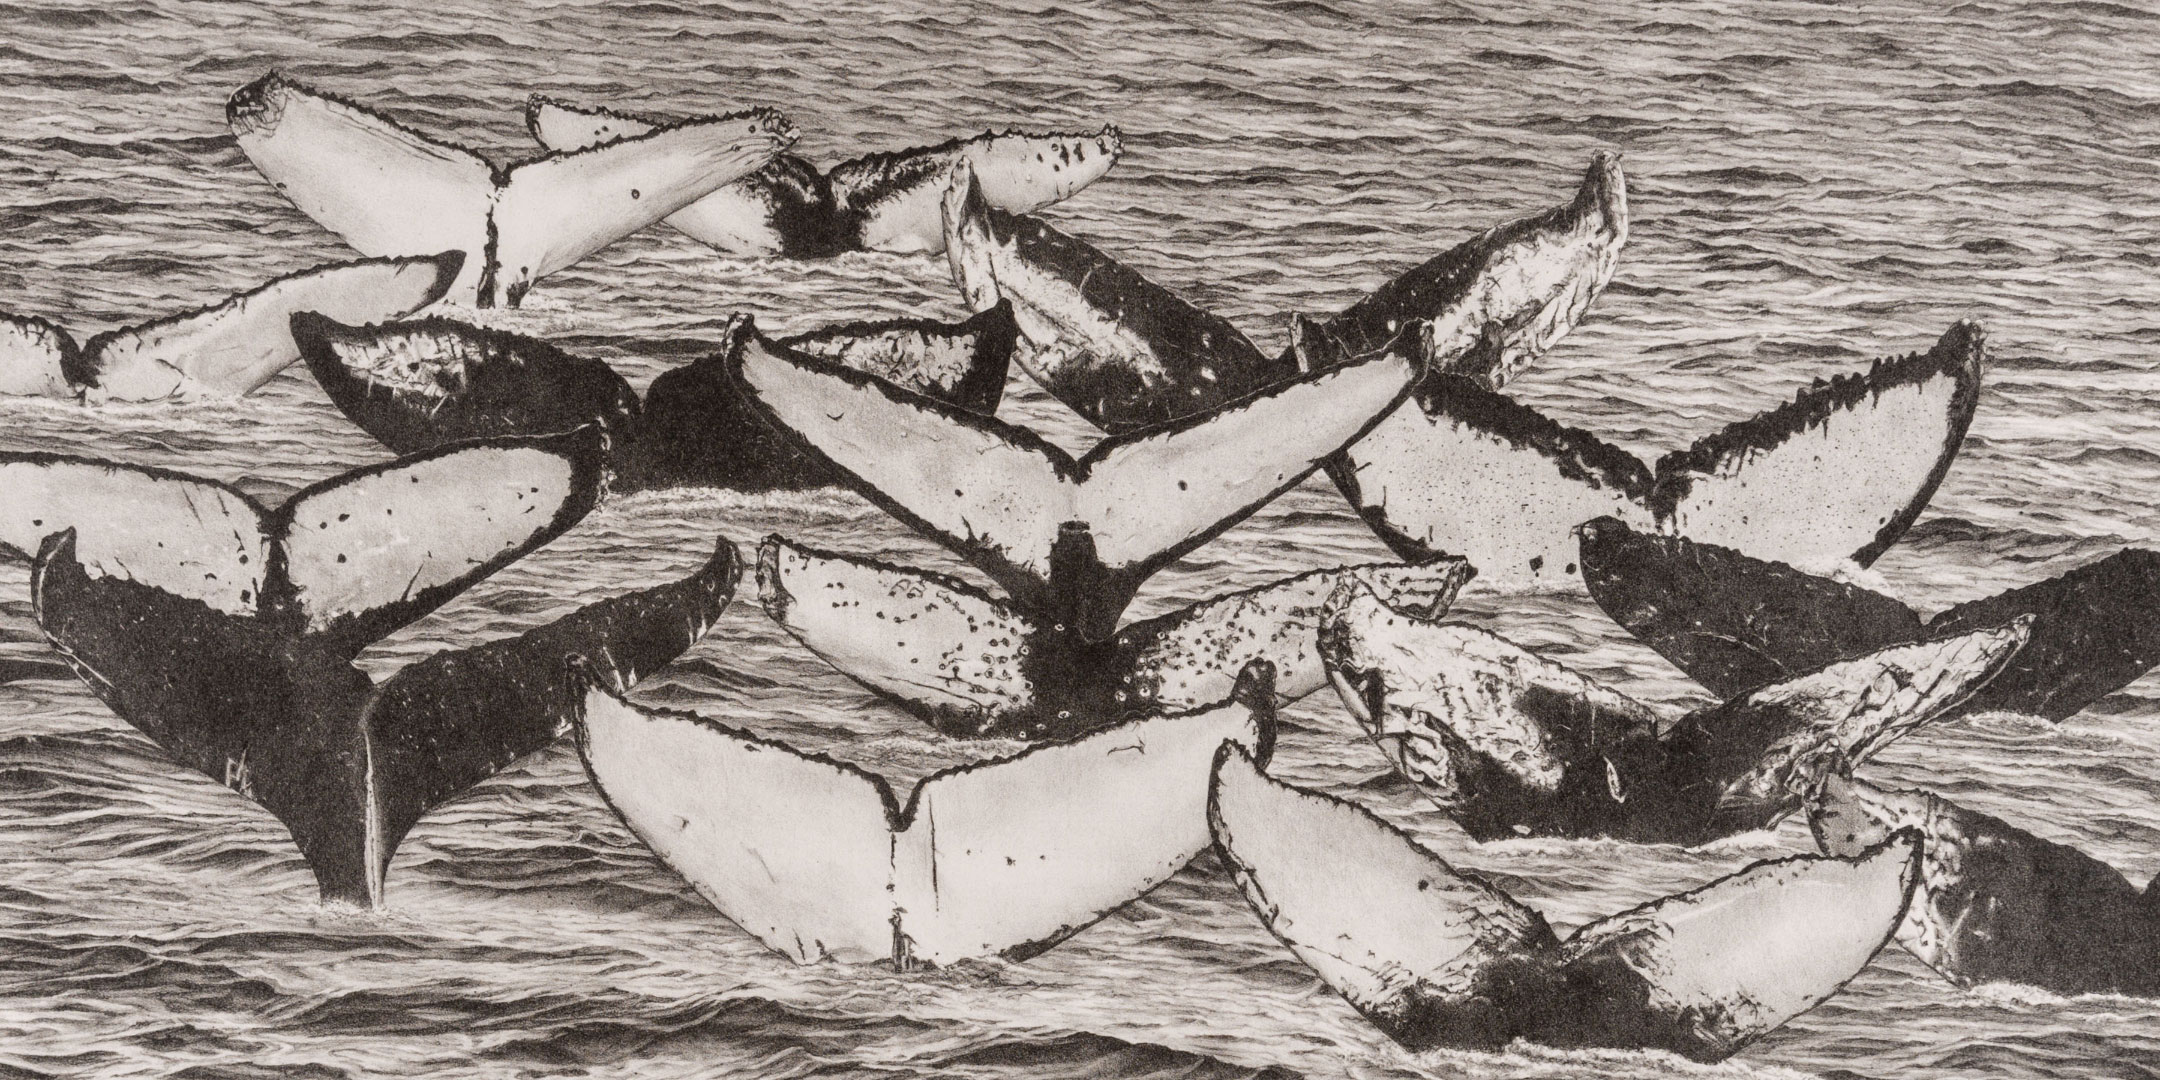 Cynthia Osborne (American, b. 1947) Tail Count, 2003 Lithograph and serigraph Jule Collins Smith Museum of Fine Art, Auburn University; gift of Joe and Julie Sanders 2018.13.09